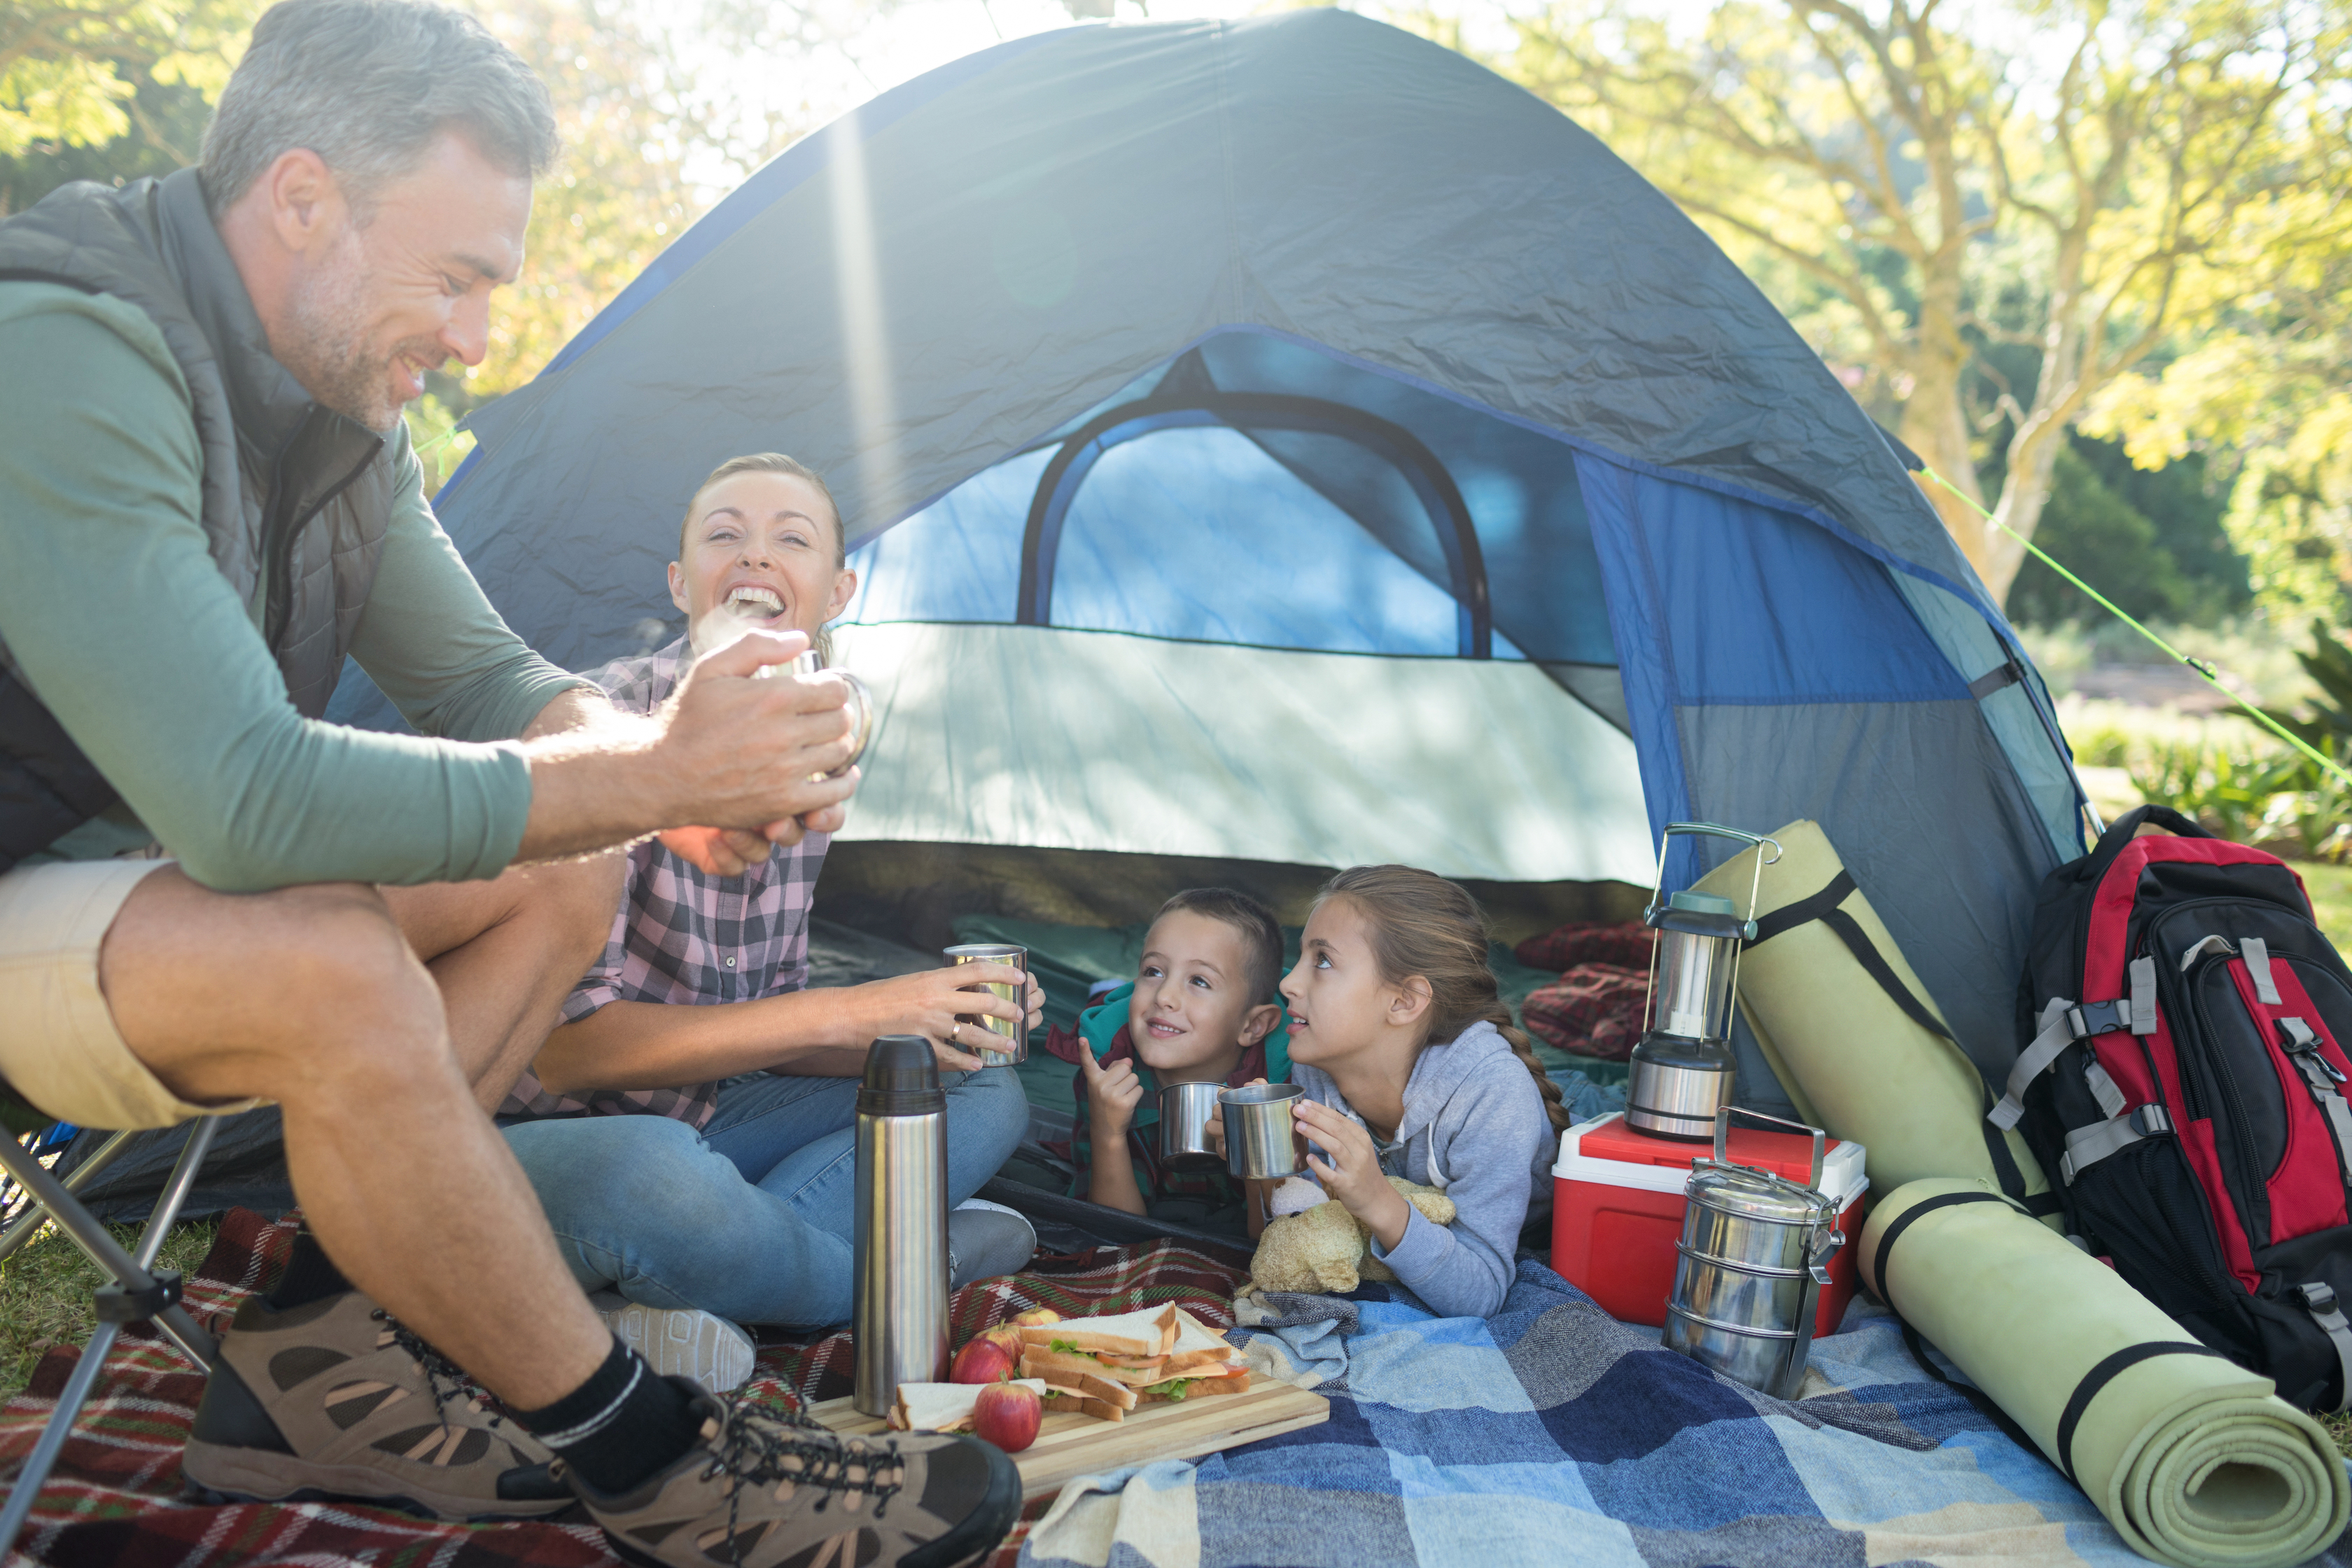 priority health personal wellness camping meals family eating together